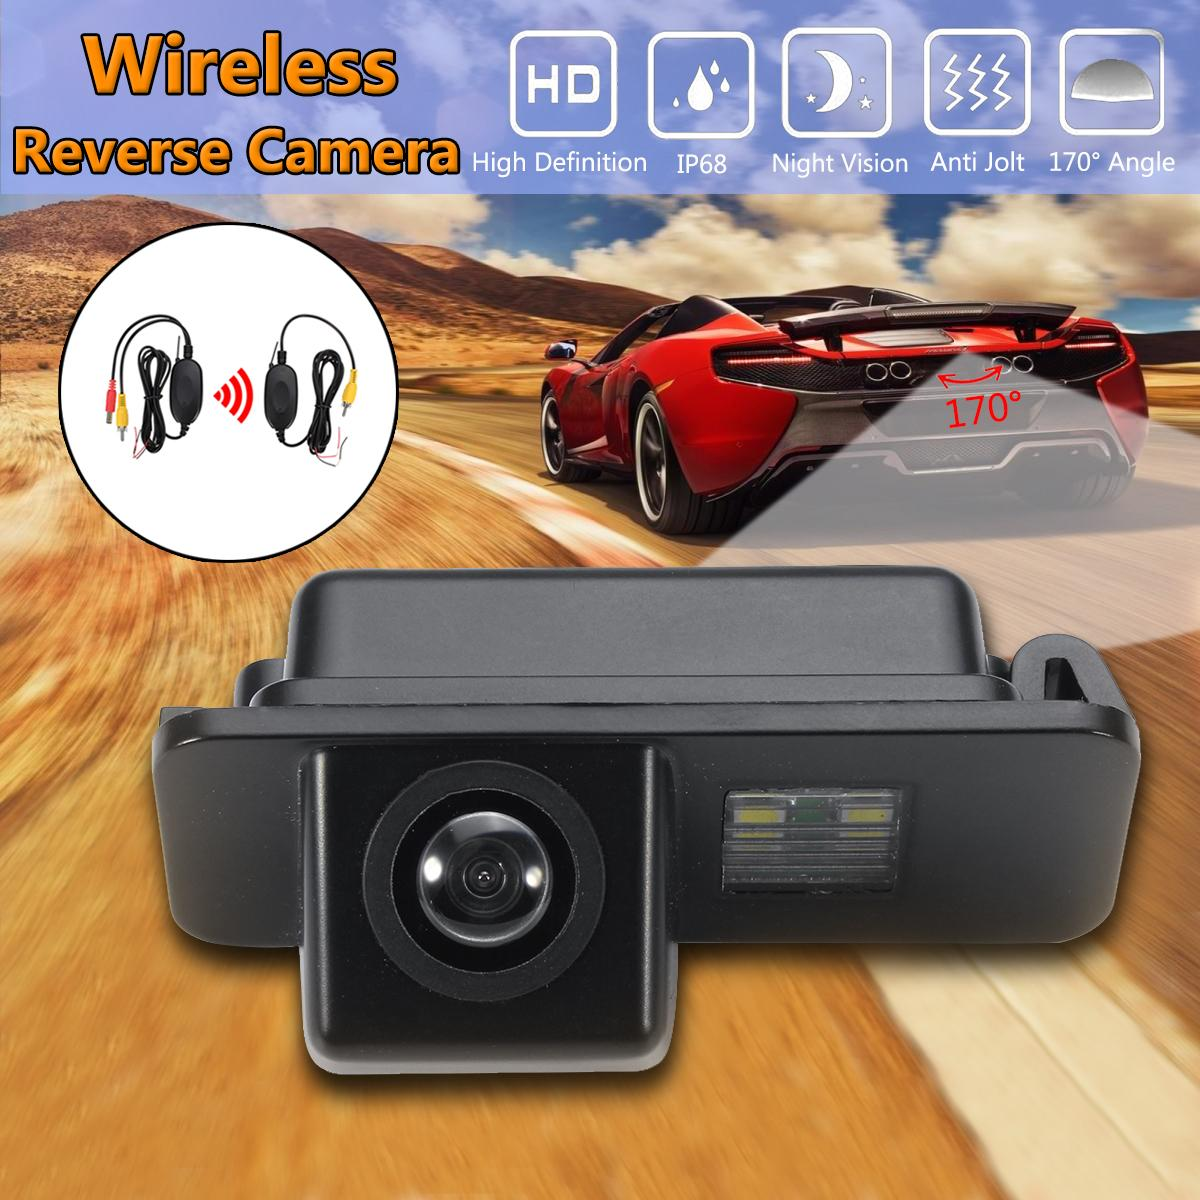 Wireless Car CCD Reverse Rear View Camera For Ford/Mondeo/Fiesta/Focus/S-Max/Kuga серьги серьги серьги серьги серьги серьги серьги серьги серьги серьги серьги